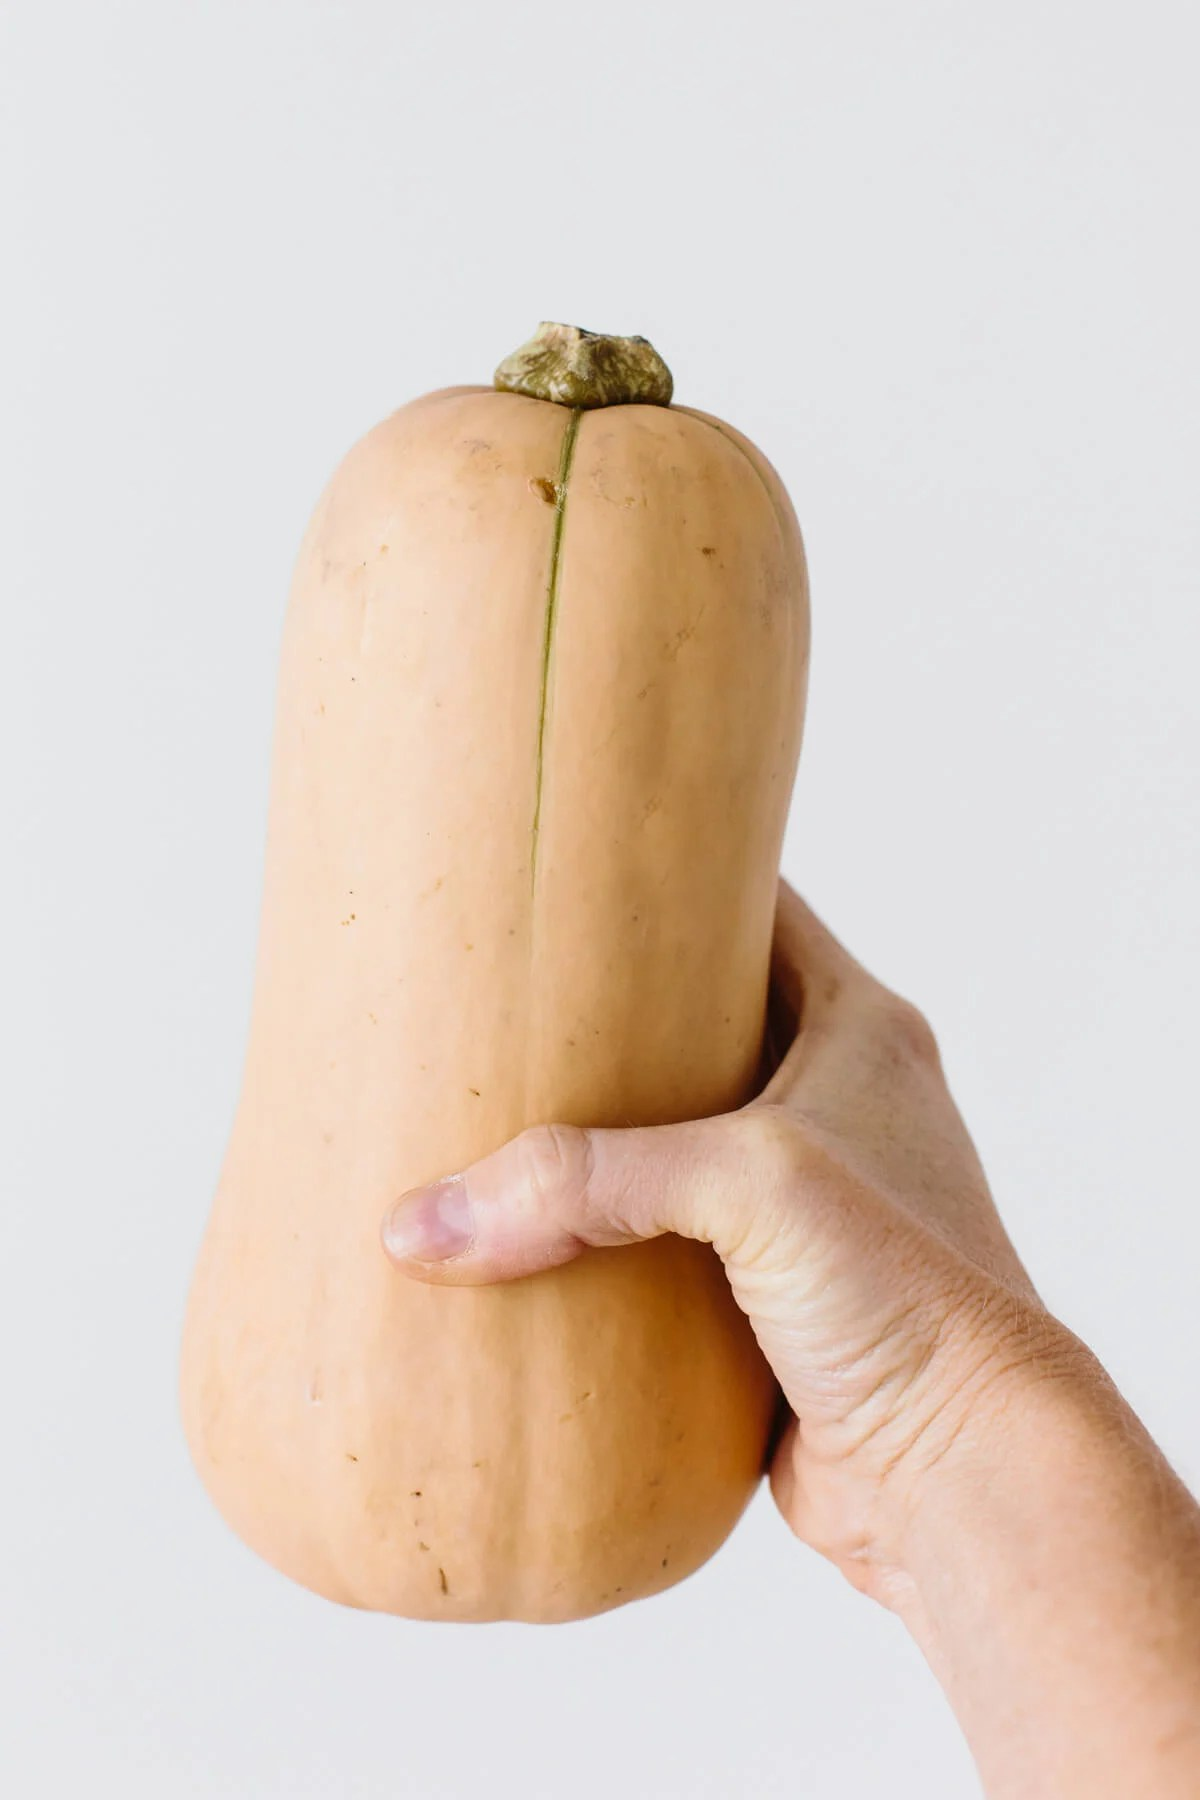 Holding butternut squash in hand.